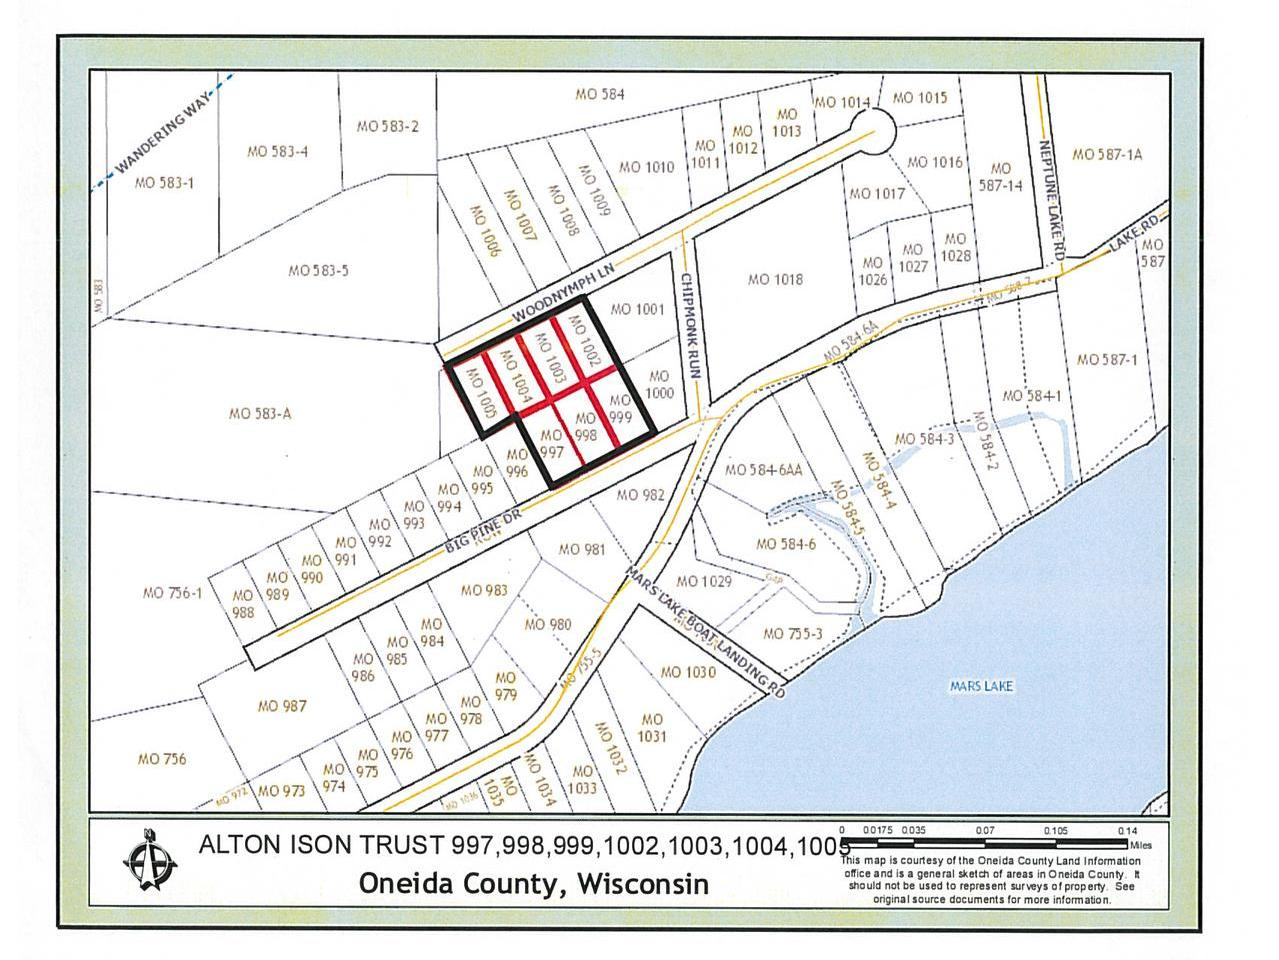 Seven lots being sold as one parcel. Total acreage is approximately 3.21 acres per GIS mapping. Located between Rhinelander, Three Lakes, and Crandon in a quiet country neighborhood. The lots are zoned single family residential with electric, gas, telephone, and cable utilities present. The parcel is within walking distance to the Mars Lake boat landing with Neptune and Venus Lakes nearby.